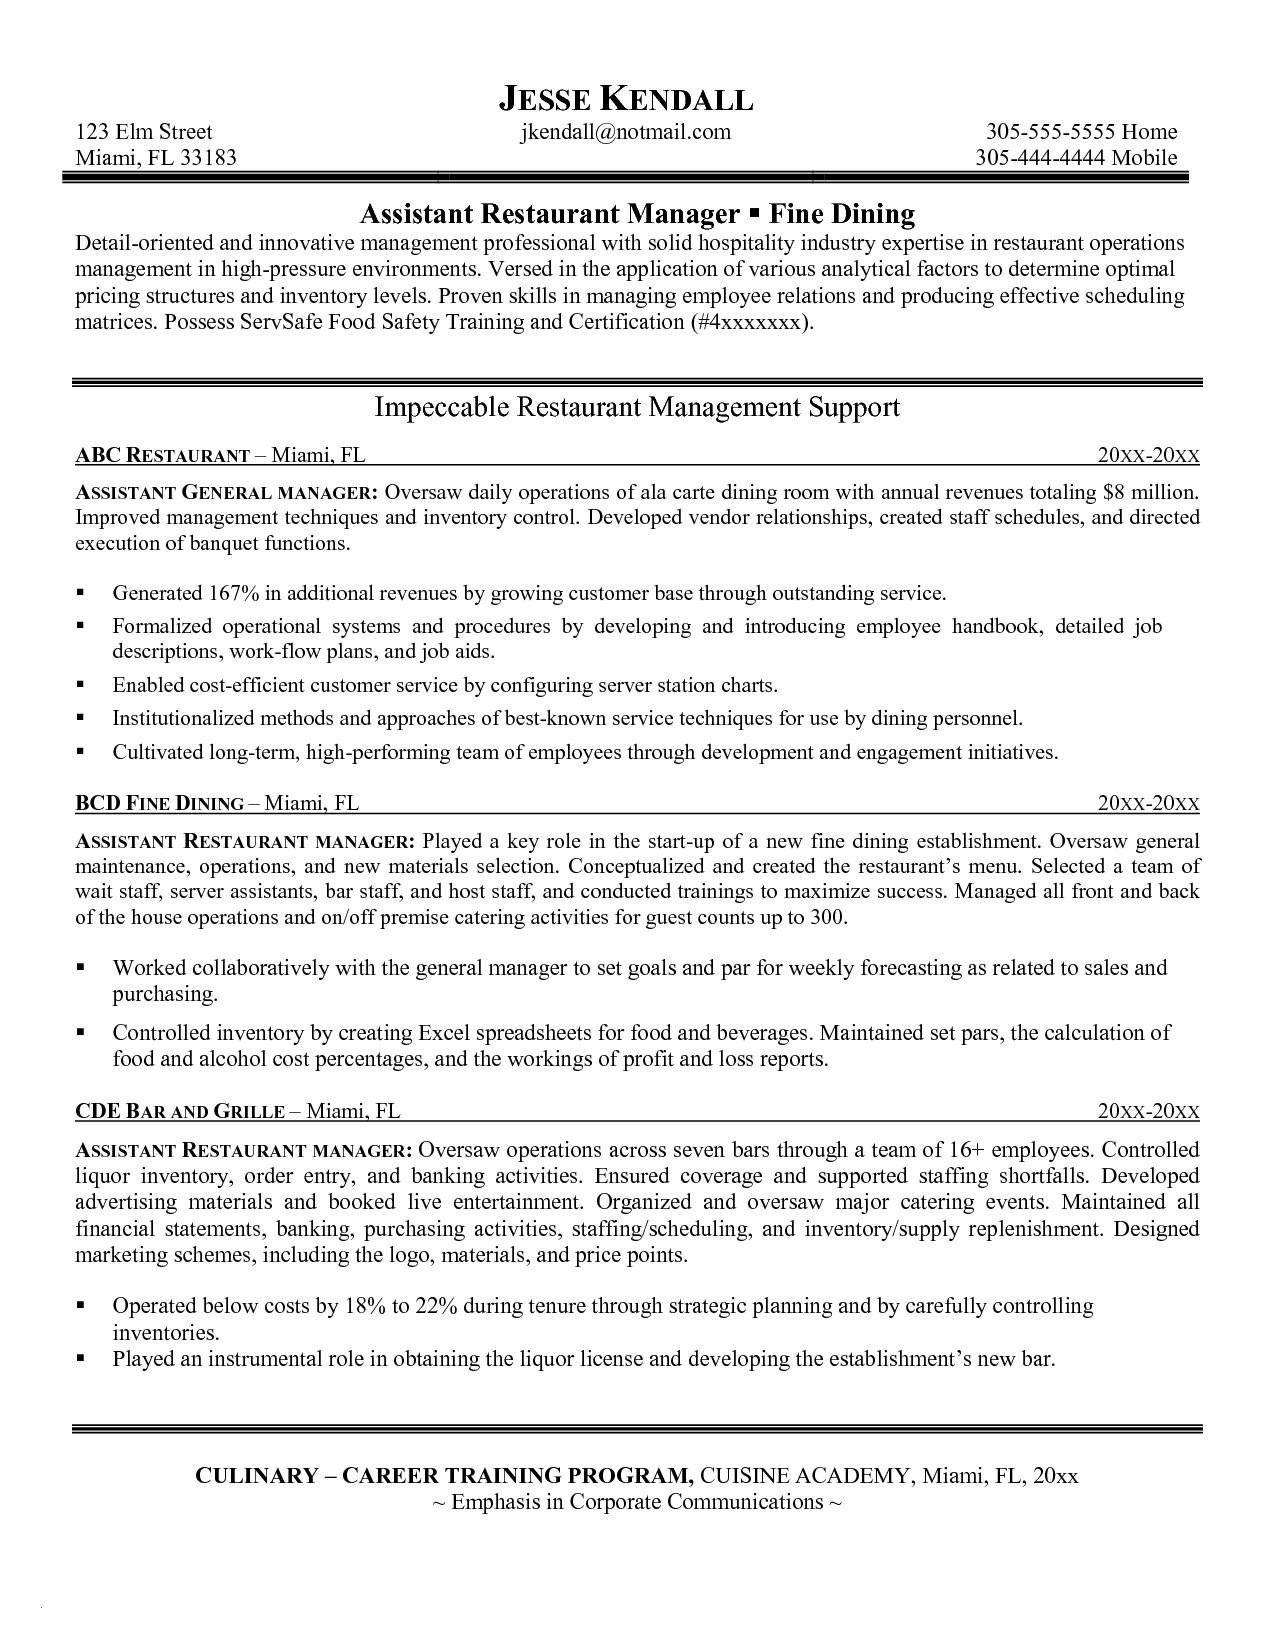 restaurant manager resume template Collection-Restaurant Manager Resume Template Unique Lovely Grapher Resume Sample Beautiful Resume Quotes 0d assistant 16-c